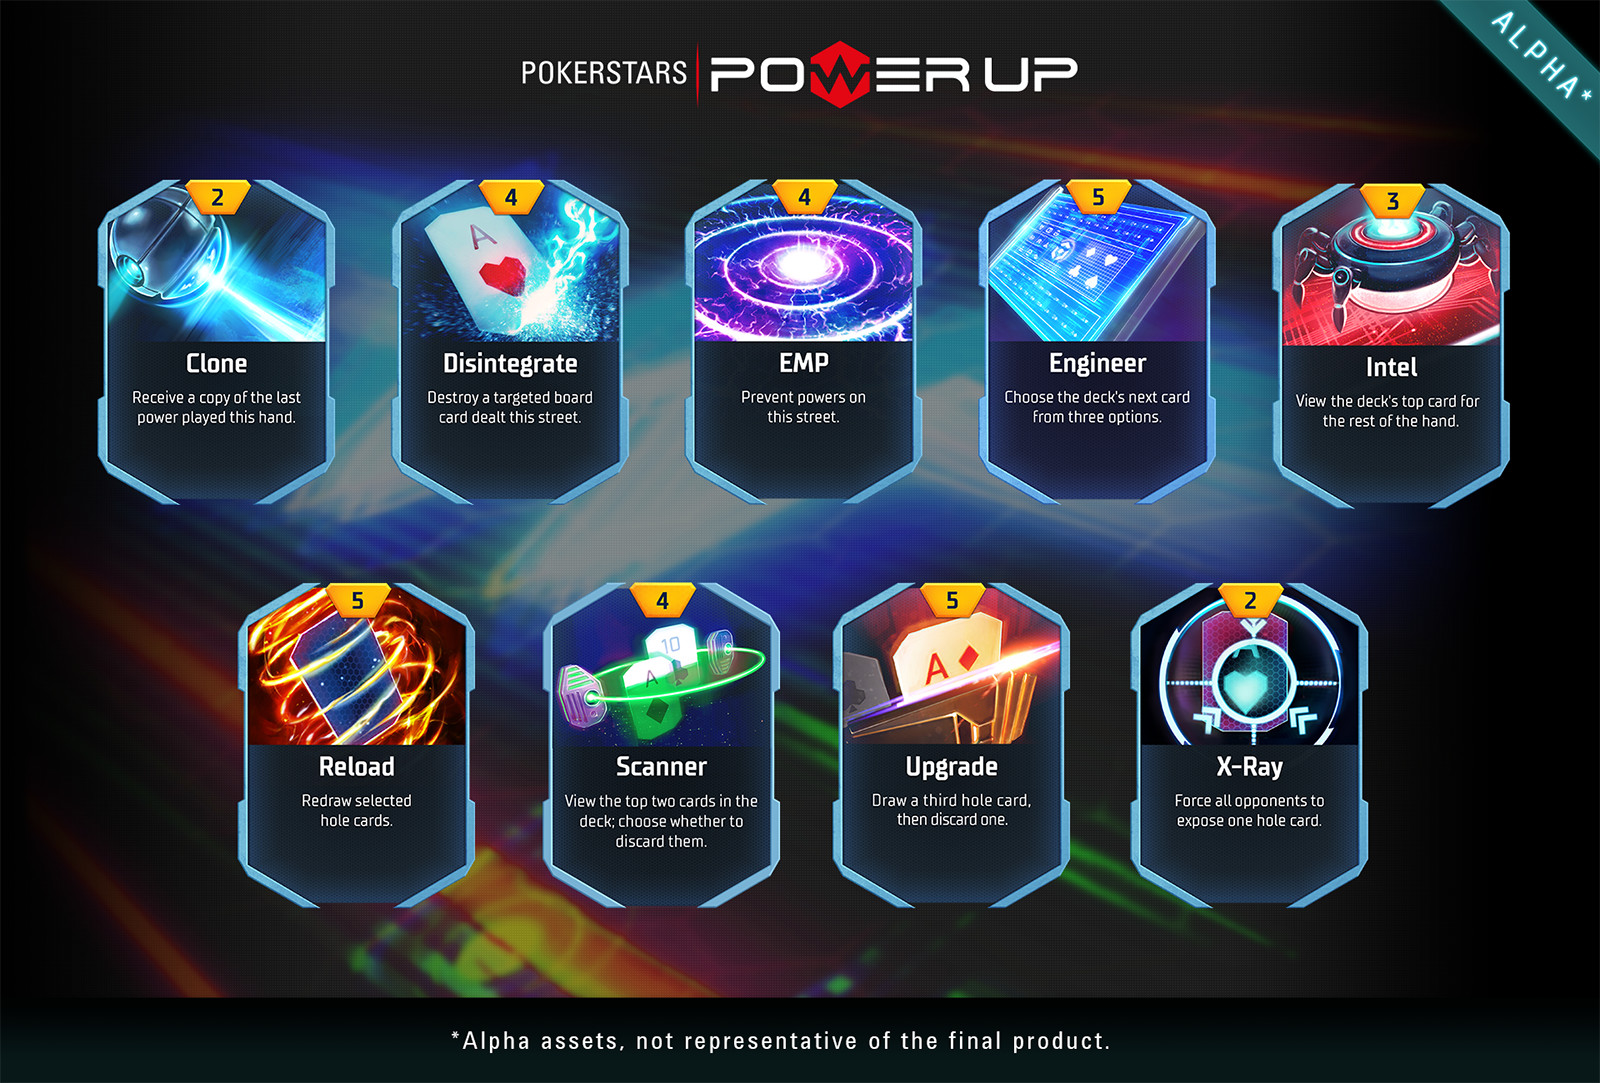 PokerStars Tests New Poker Game, Power Up 101